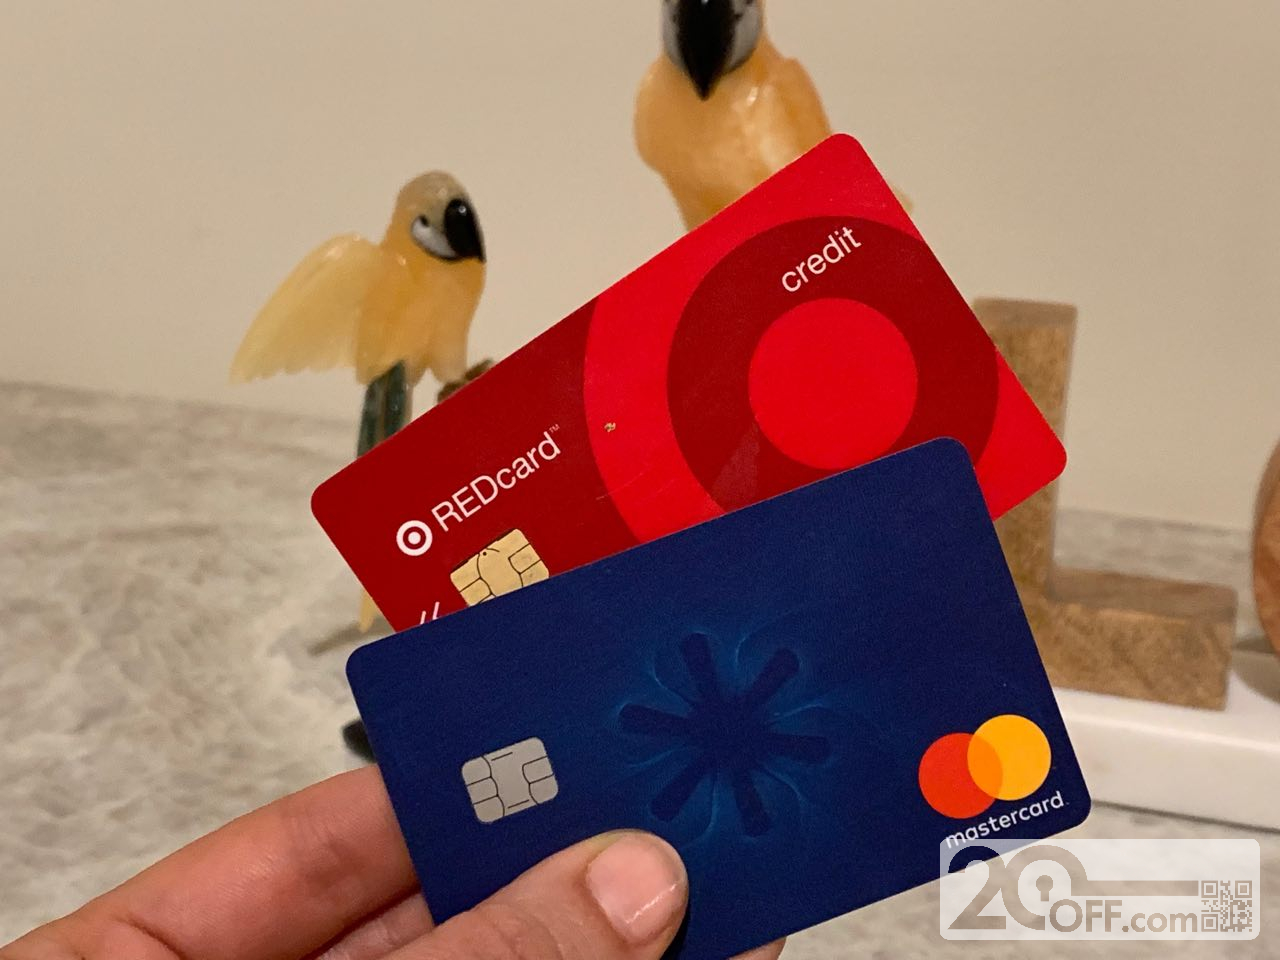 Walmart And Target Credit Cards